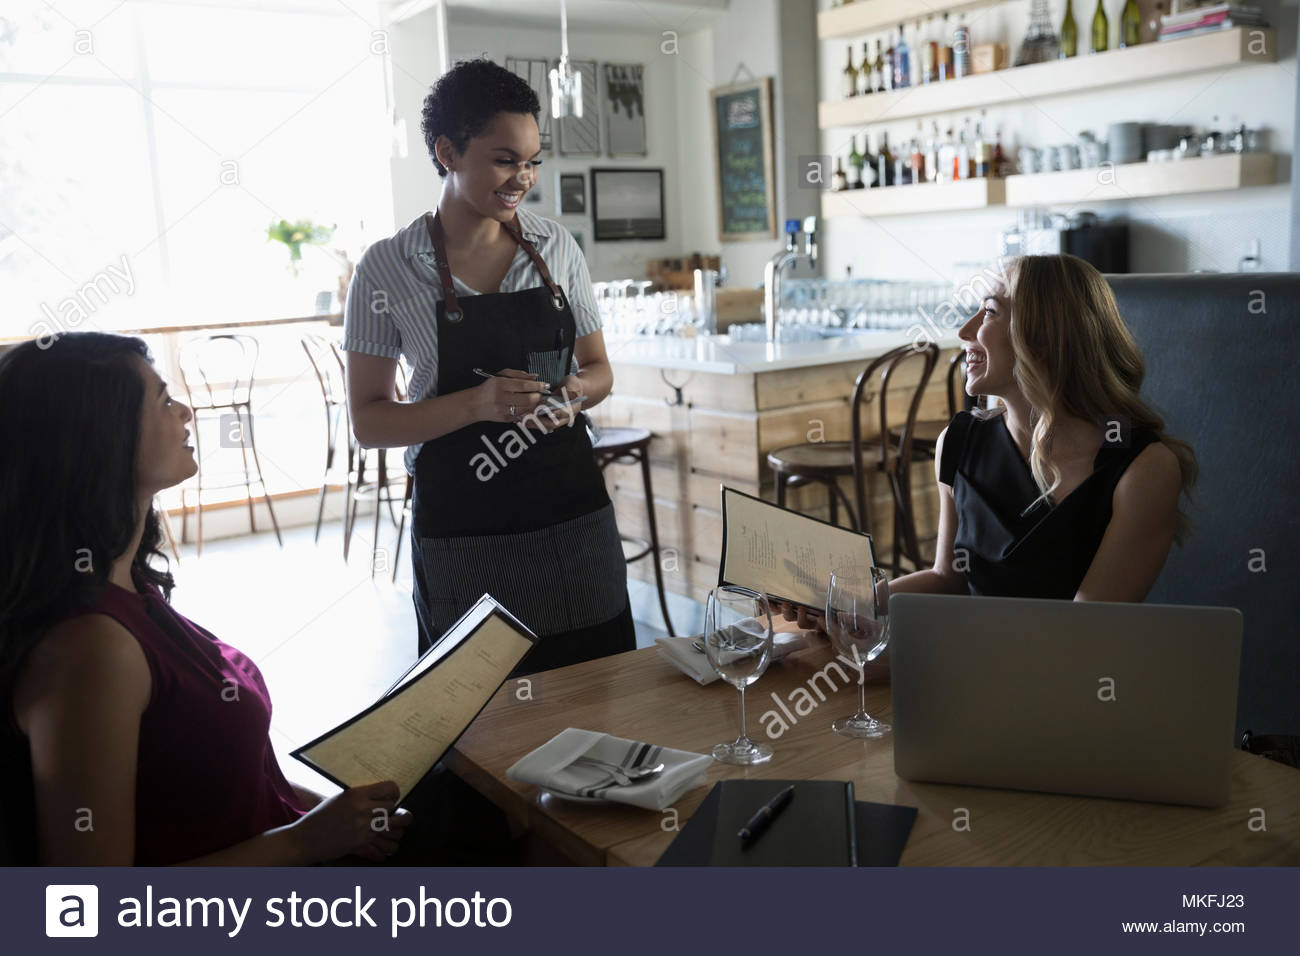 Businesswomen ordering from waitress at cafe - Stock Image